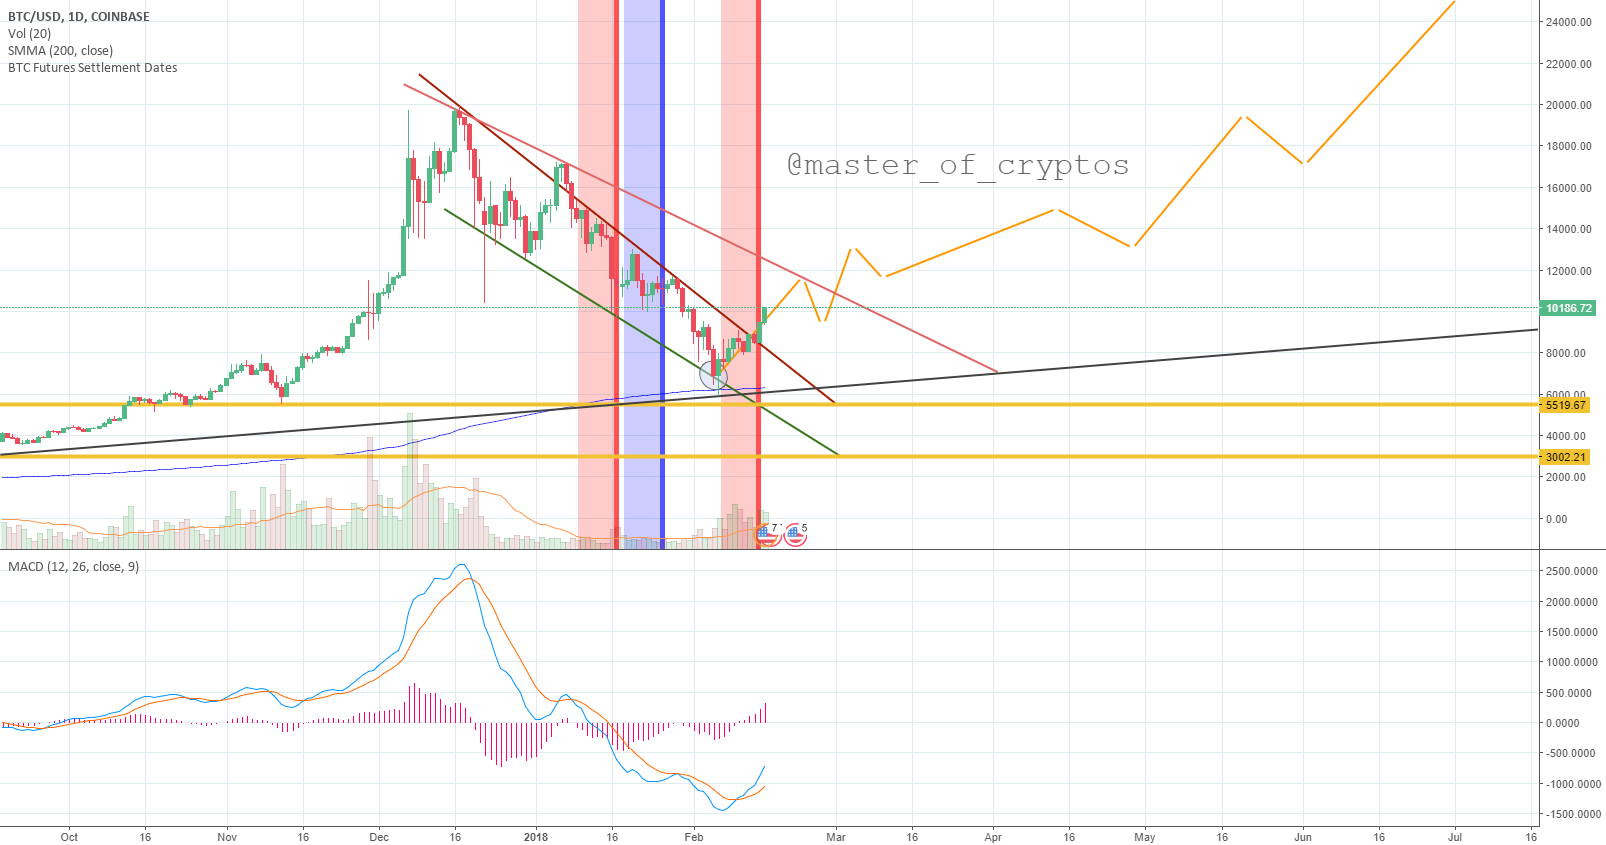 Still in downtrend but cannot ignore this buy opportunity